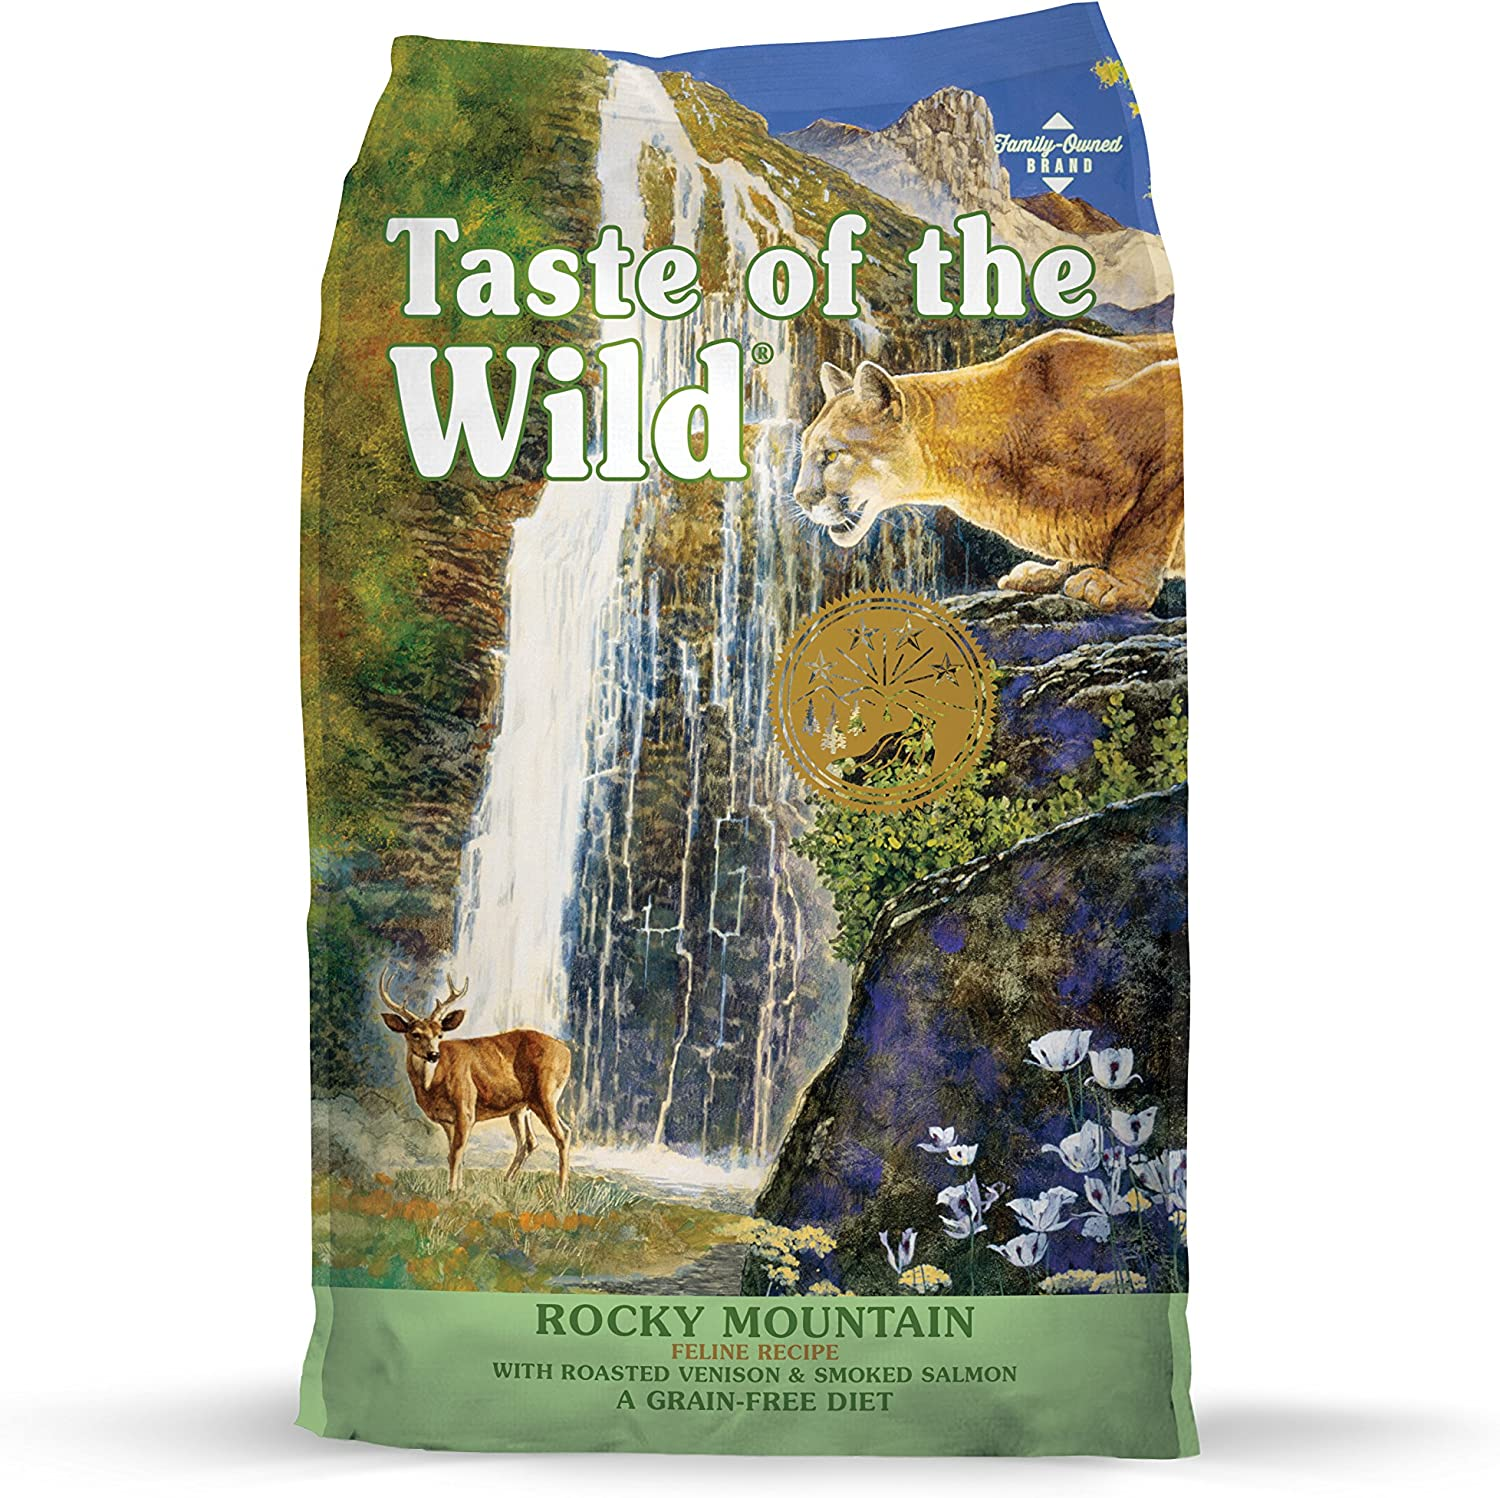 2. Taste of the Wild Dry Cat Food